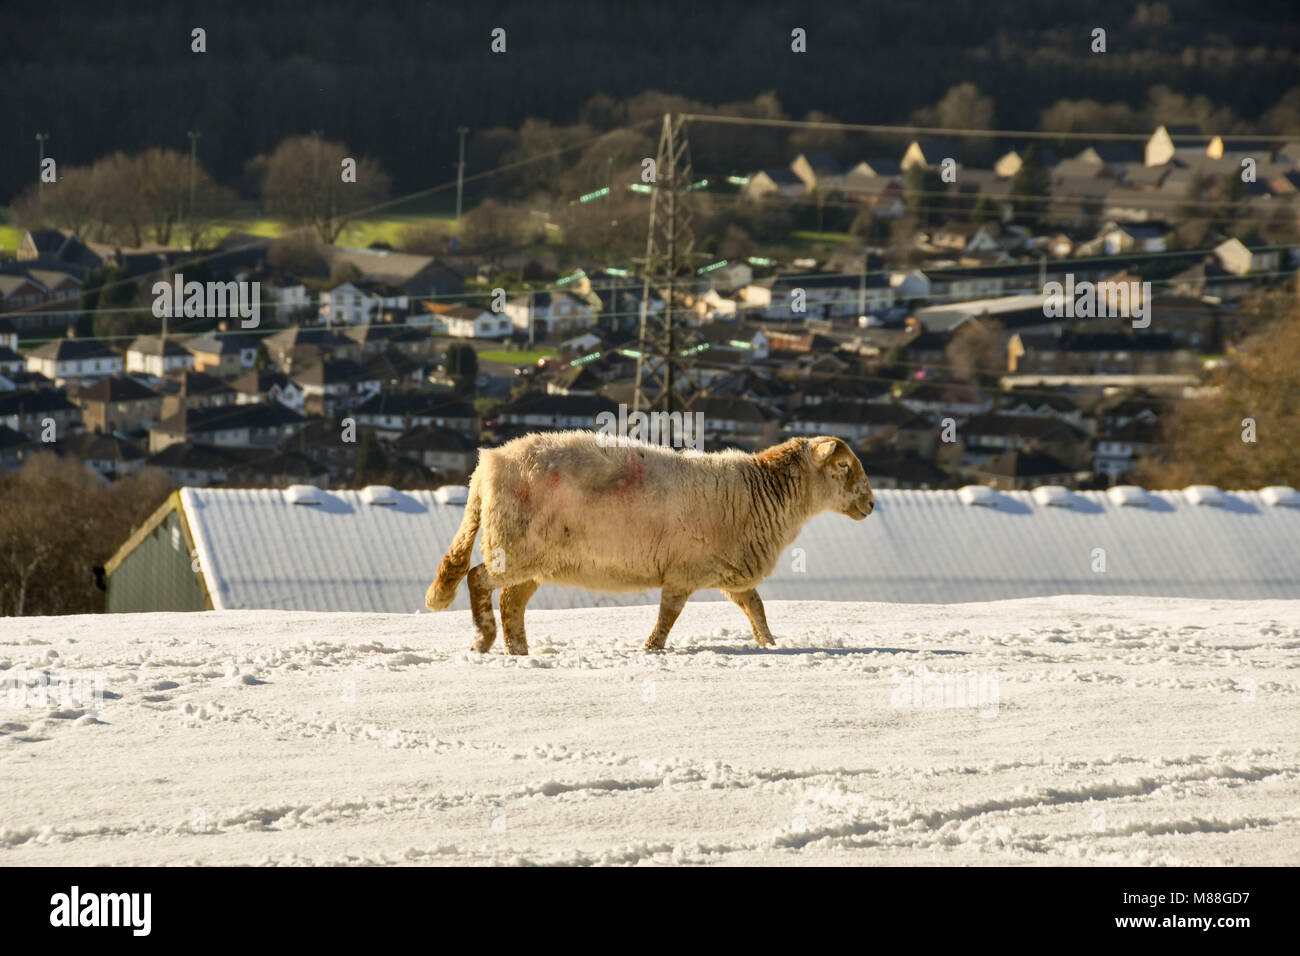 Sheep in a snow covered mountain field in winter - Stock Image